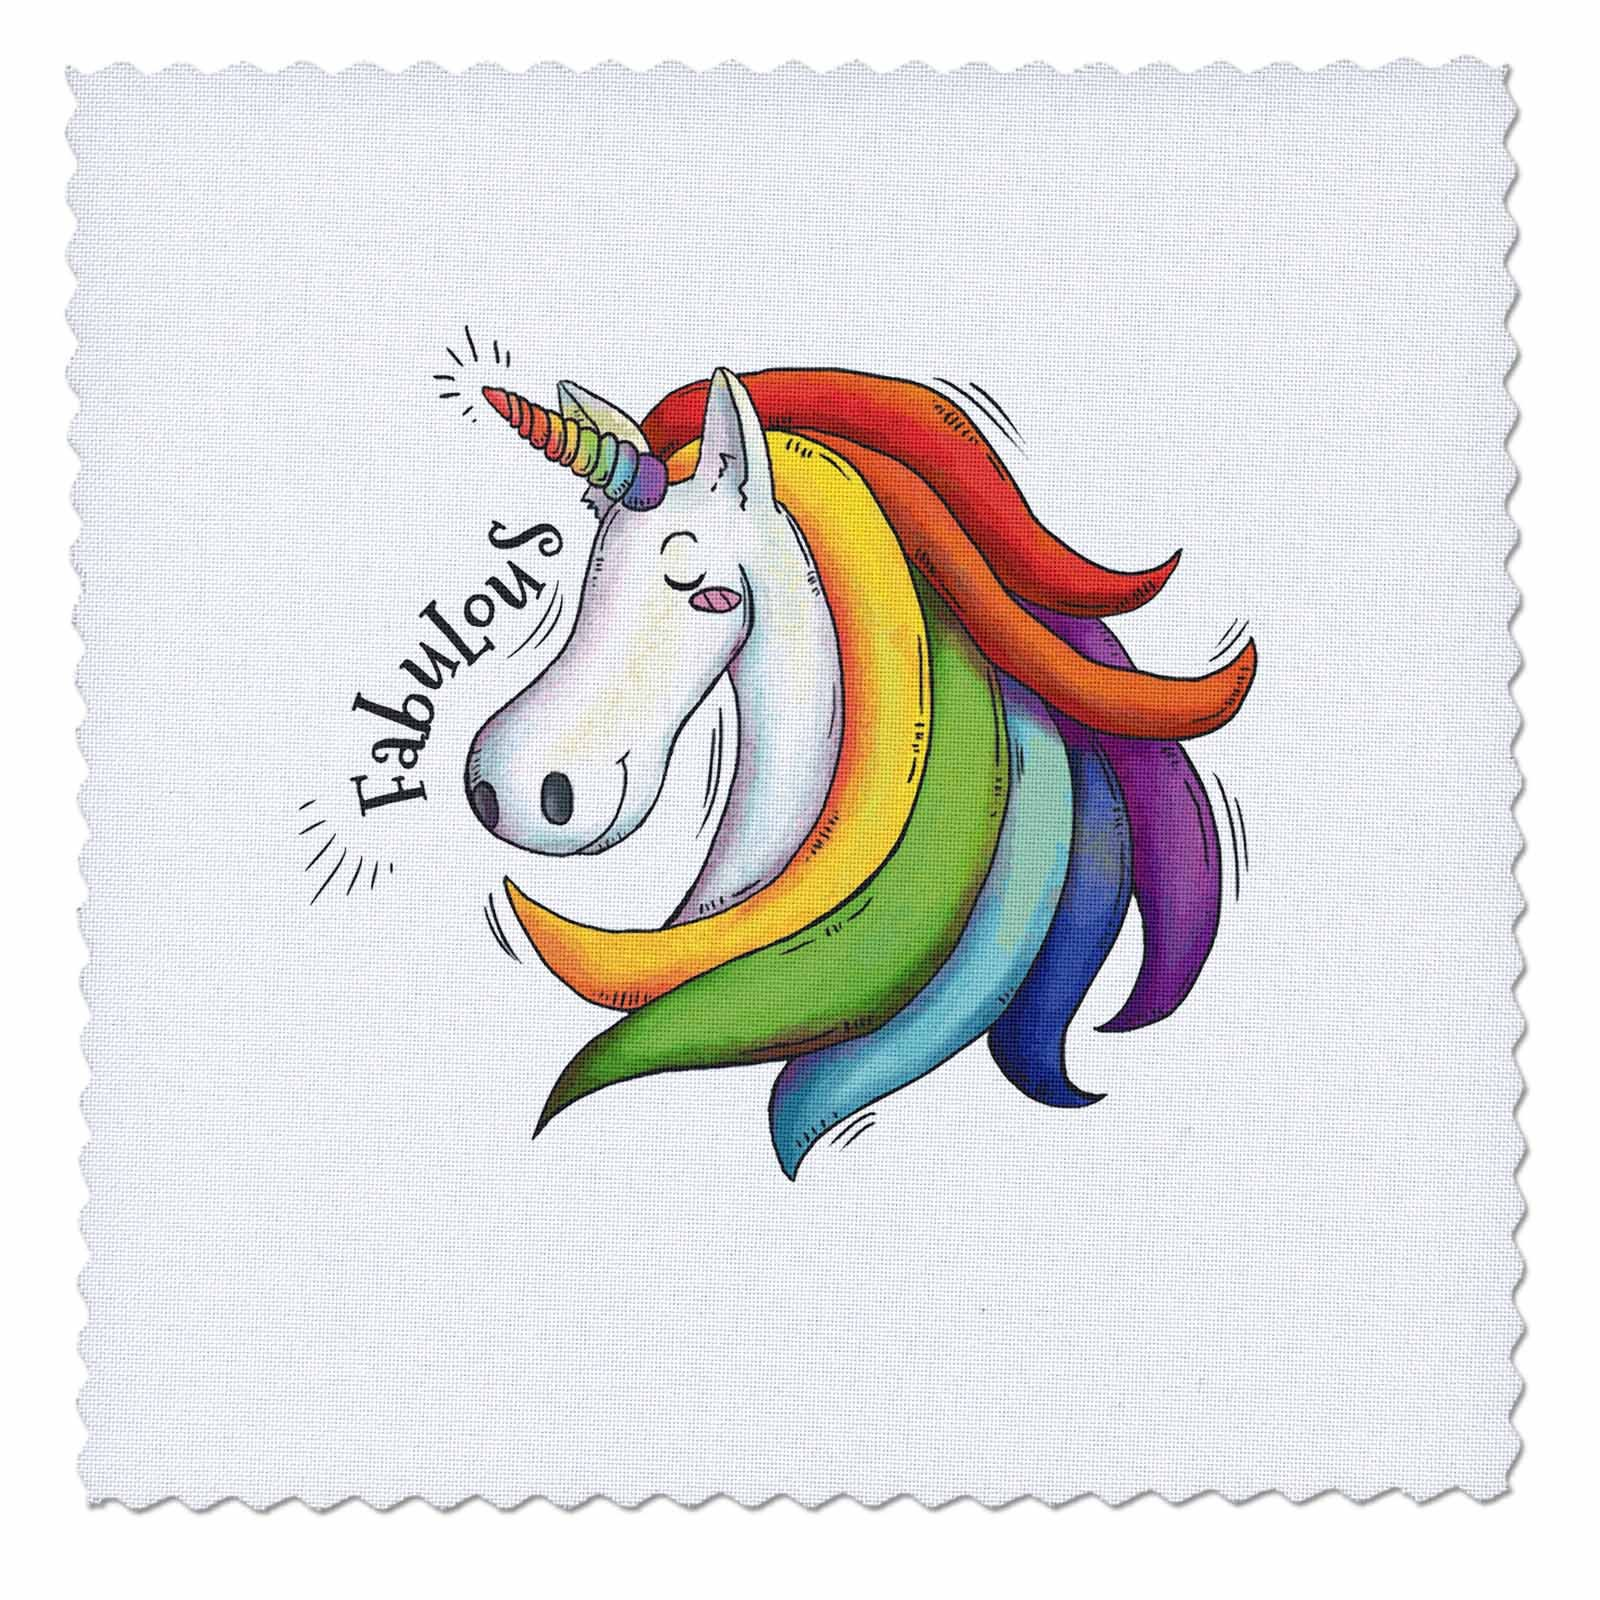 3dRose Sven Herkenrath Animal - Funny Fantasy Unicorn with Rainbow Fabulous - 16x16 inch quilt square (qs_280357_6)